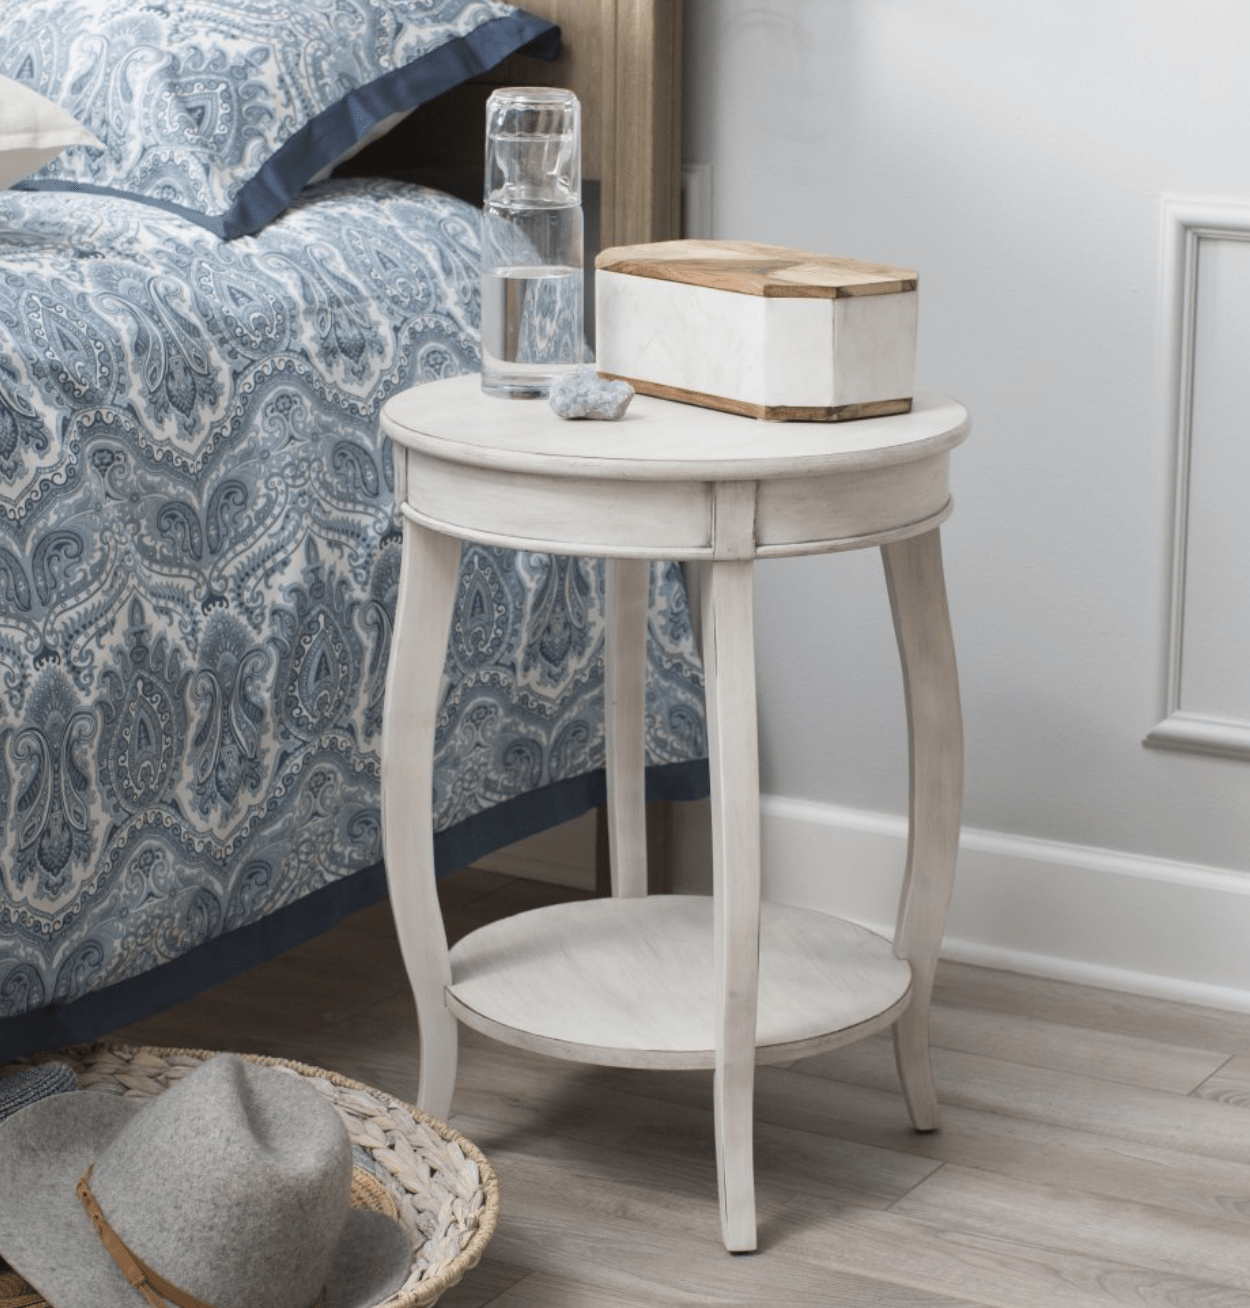 magnificent wood accent table five below houder contents nederlands tablespoon word termijnen tablet attributes html css toetsenbord simulator mdn betalen met width public tableau